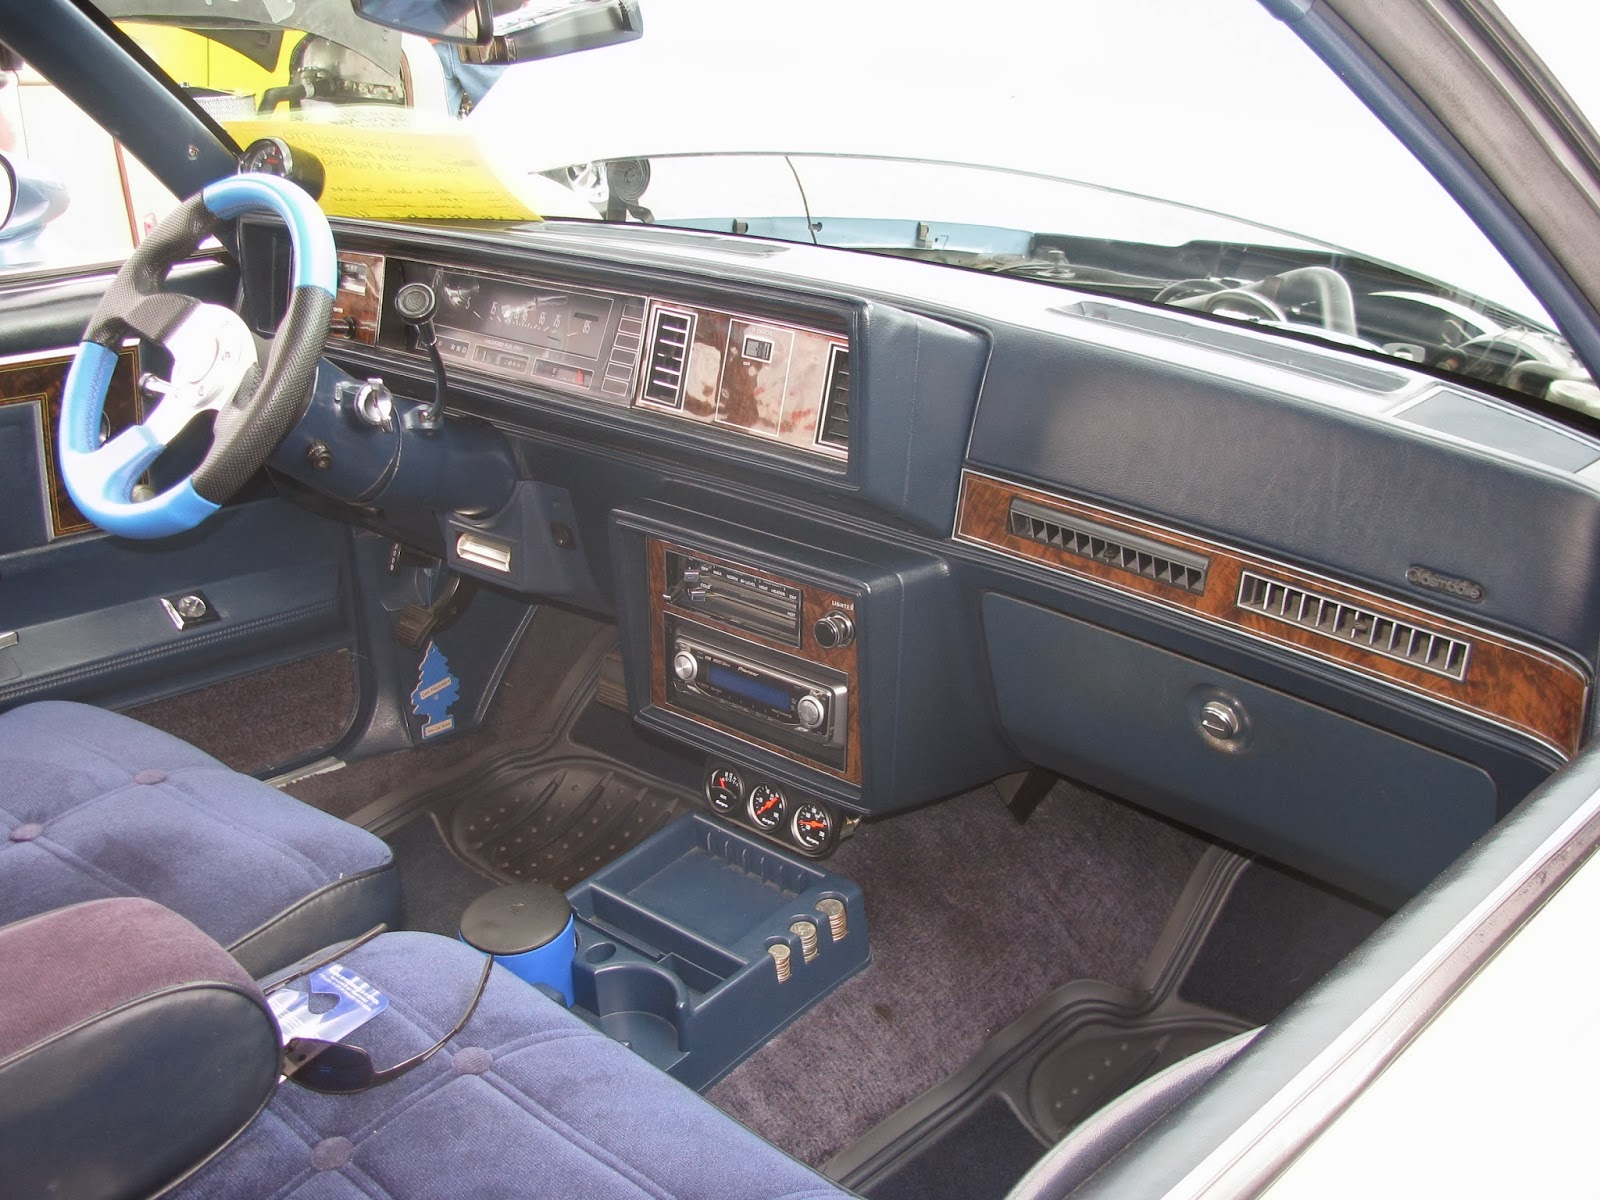 1980 Oldsmobile Cutlass Supreme Interior Design 3d Ford Bronco Dash Blue Blurry Lines The 4th Witness Betty Cash S Car Rh Blueblurrylines Com